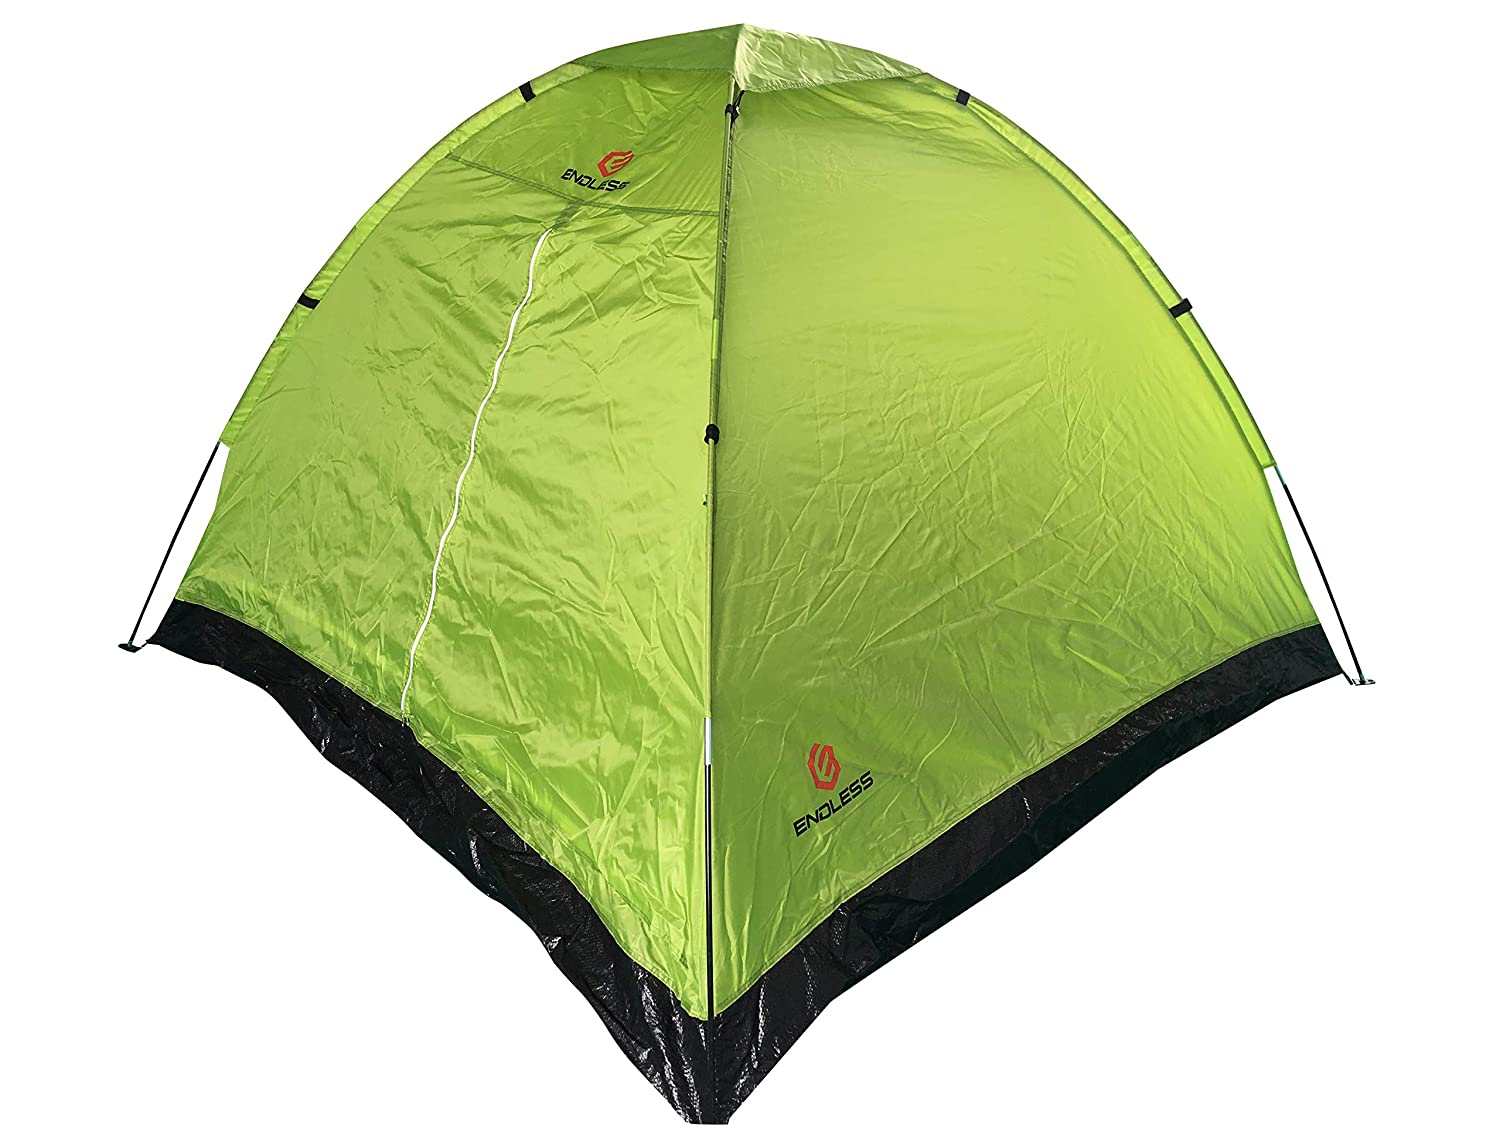 Endless Waterproof Camping Dome Tent